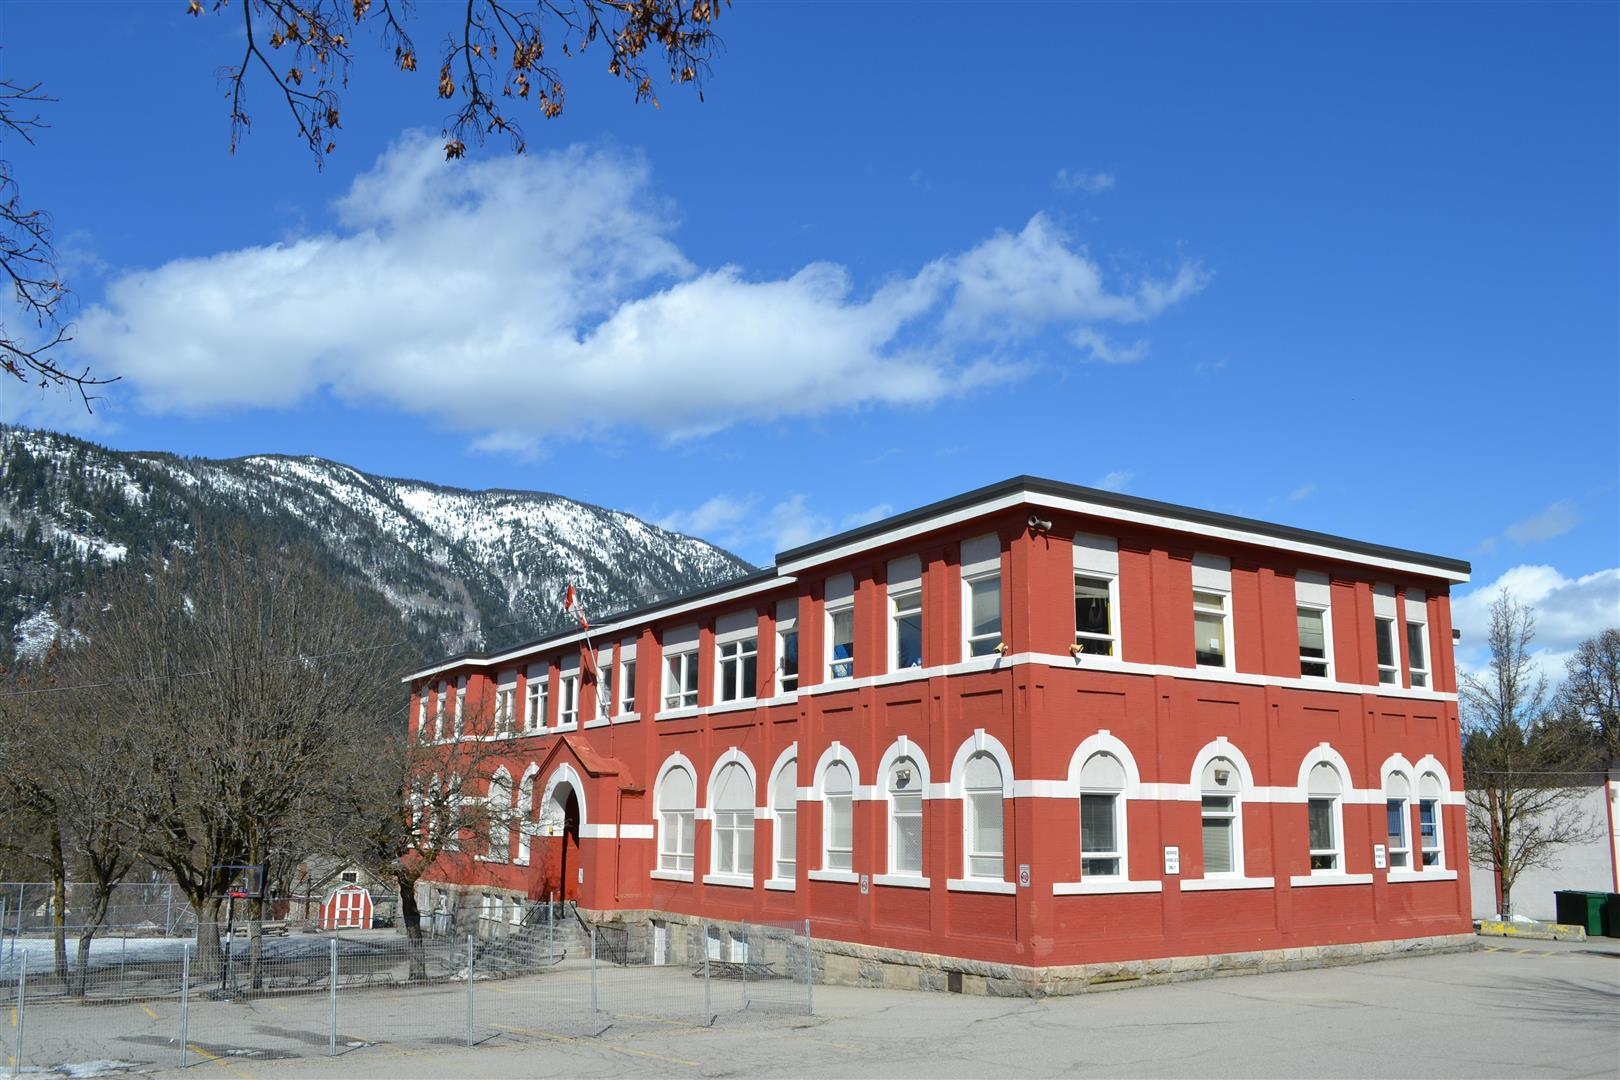 image of Wildflower School, Nelson, BC